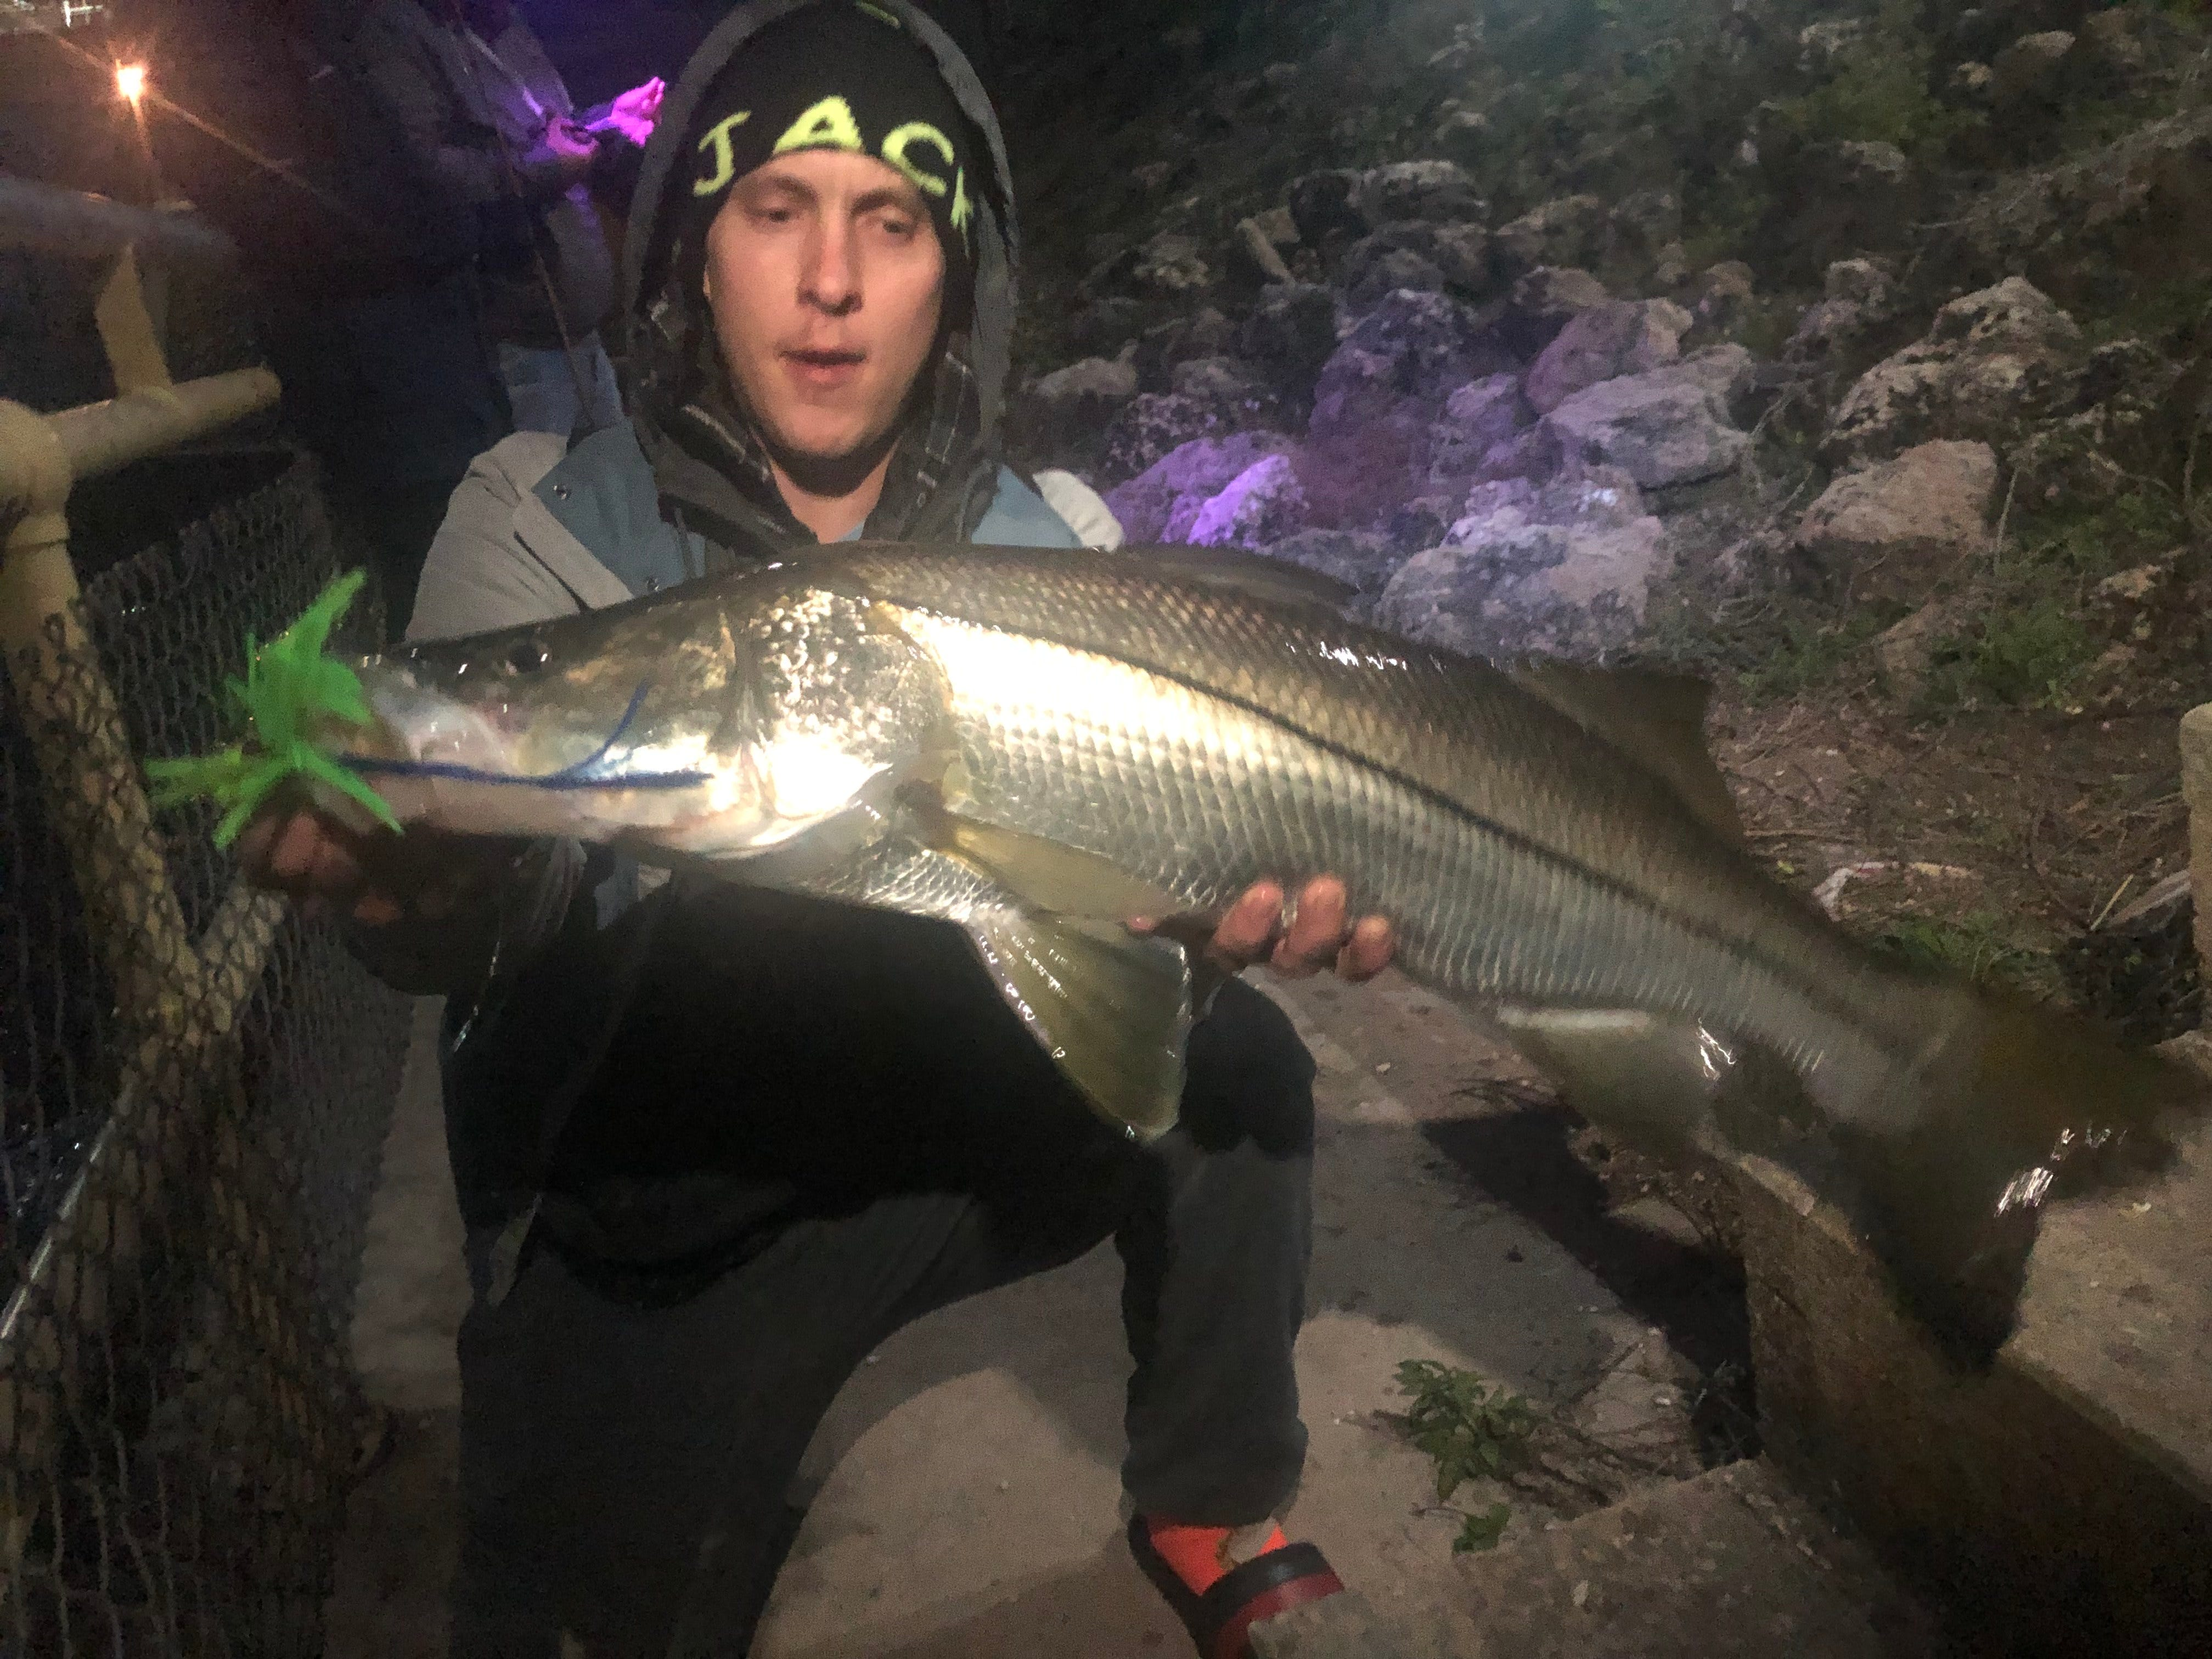 C.J. Shotwell with a cold front snook during the full/blood moon.